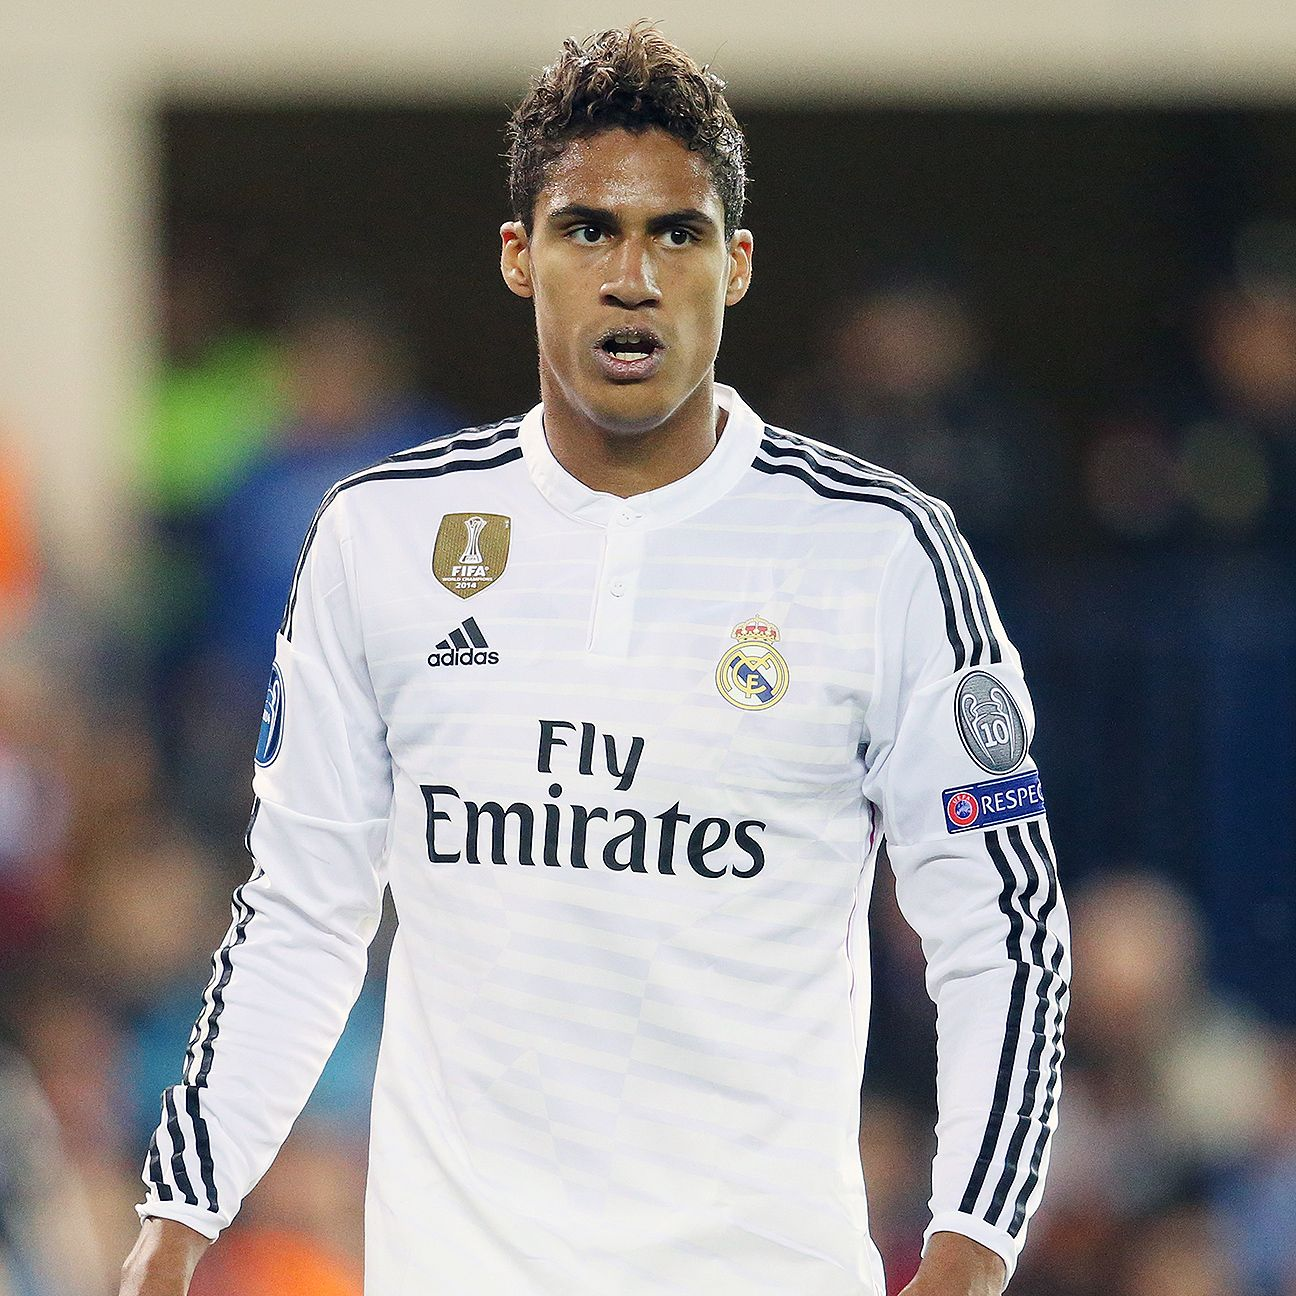 Raphael Varane stood tall for Real in their scoreless Champions League quarterfinal first leg versus Atletico.